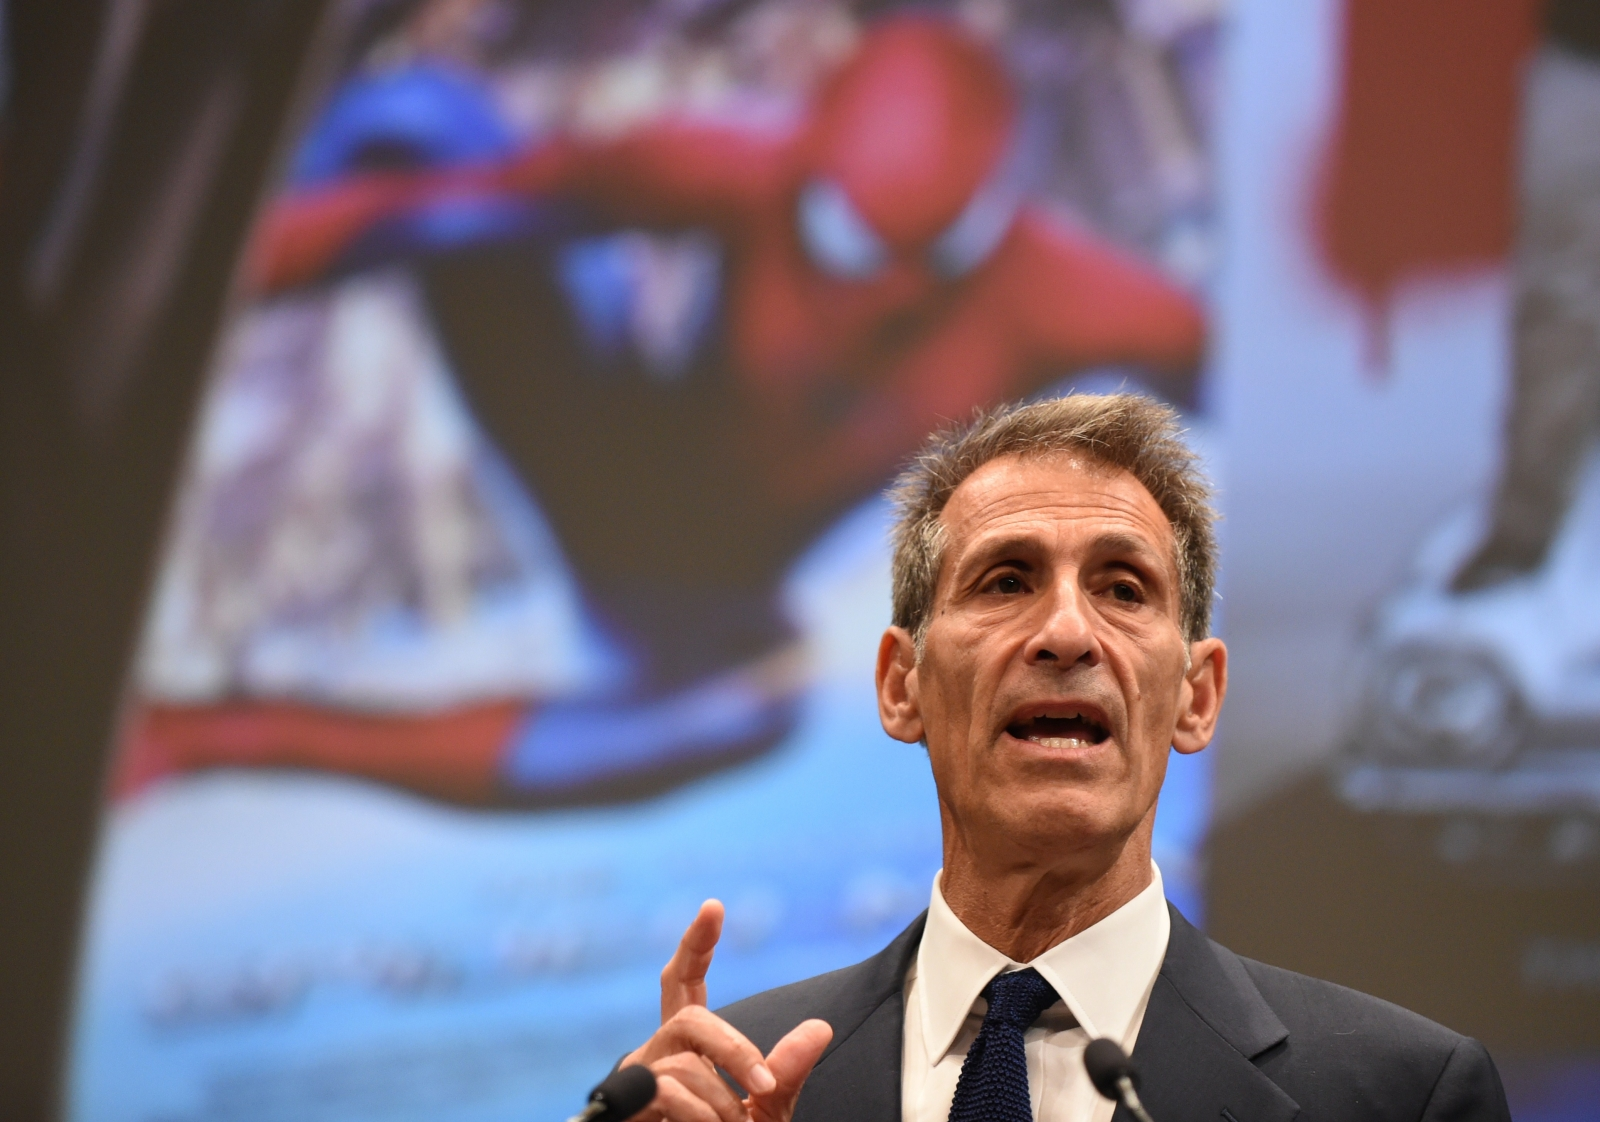 Sony Entertainment's CEO Michael Lynton to step down, focus on Snap responsibilities